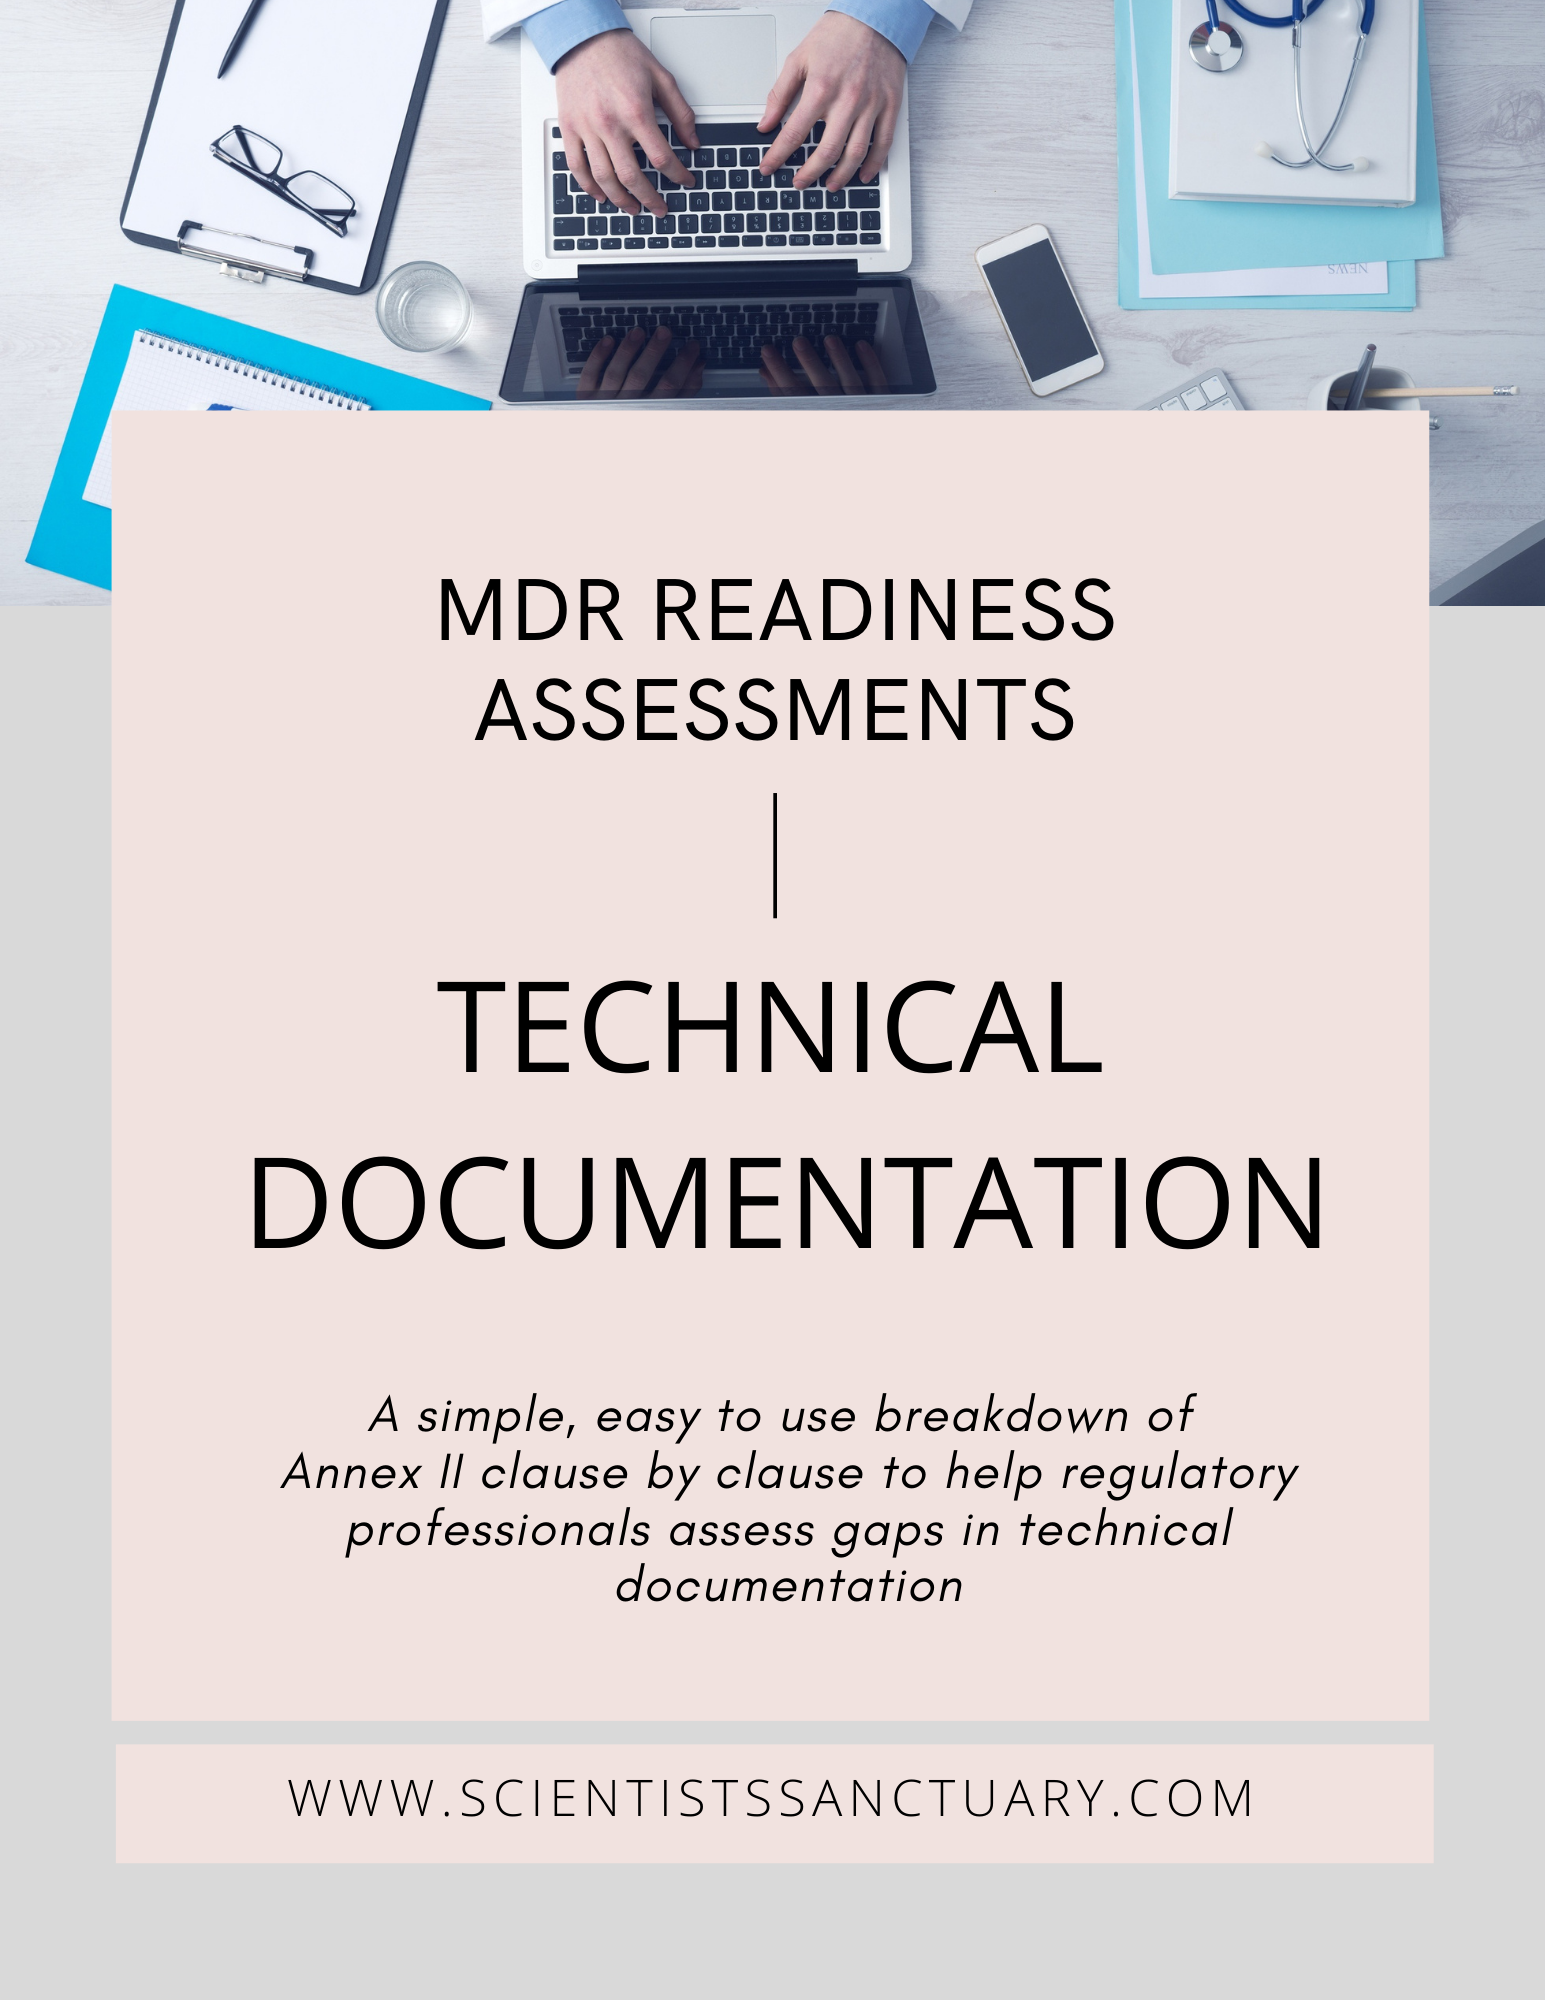 MDR READINESS ASSESSMENT_TECHNICAL DOCUMENTATION (2)